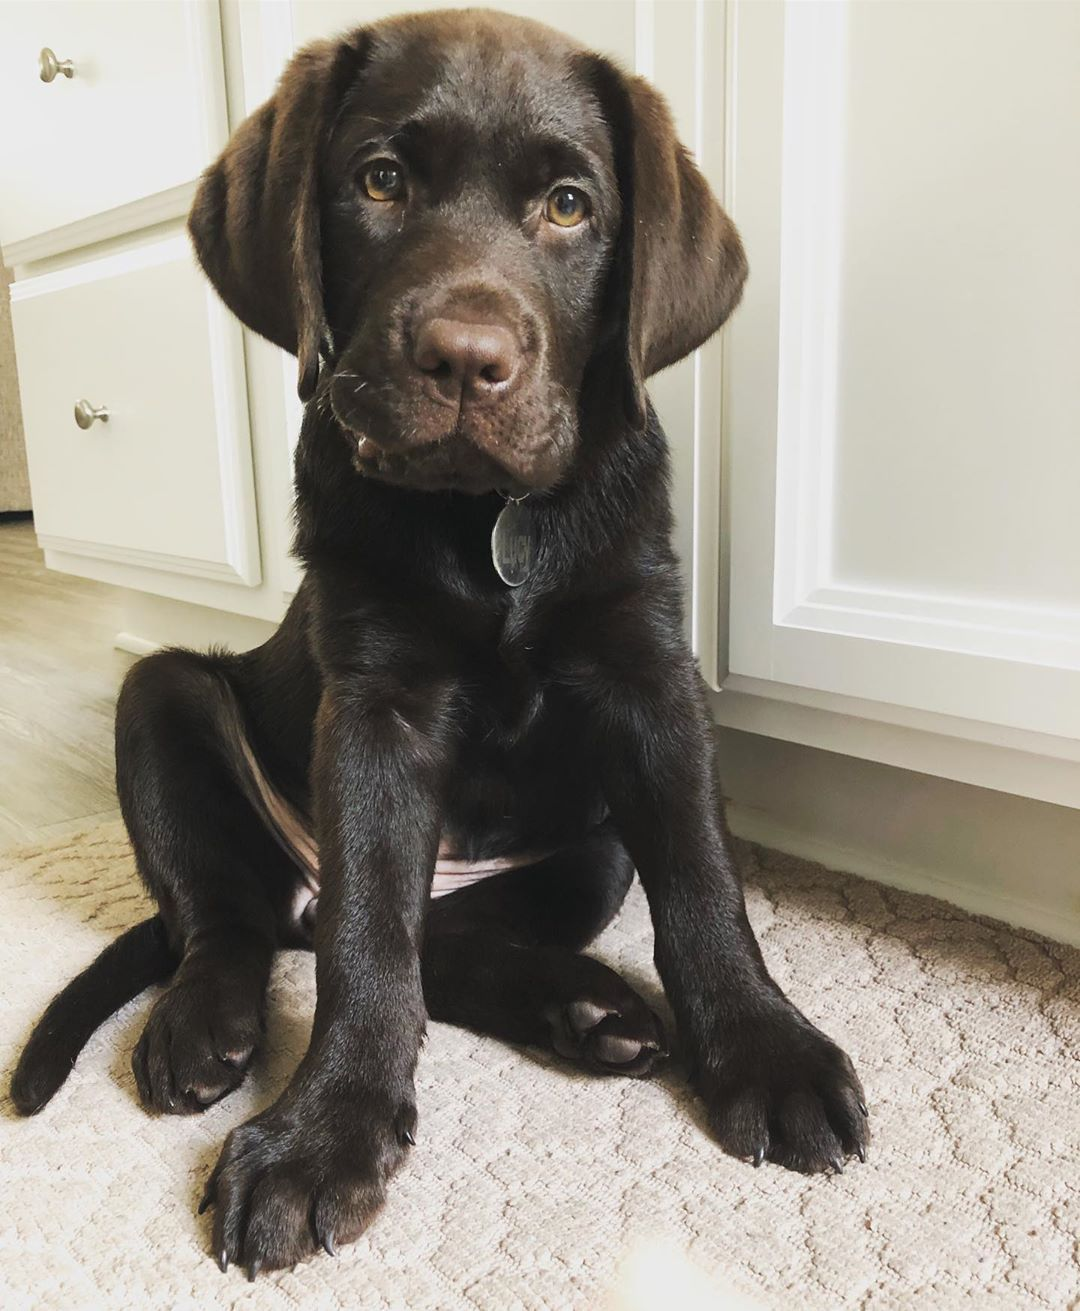 If You Love Labradors Visit Our Blog Labrador Labradorretriever Labradorcentral Retriever Labradors Retrievers Chocolate Lab Puppies Pretty Dogs Puppies